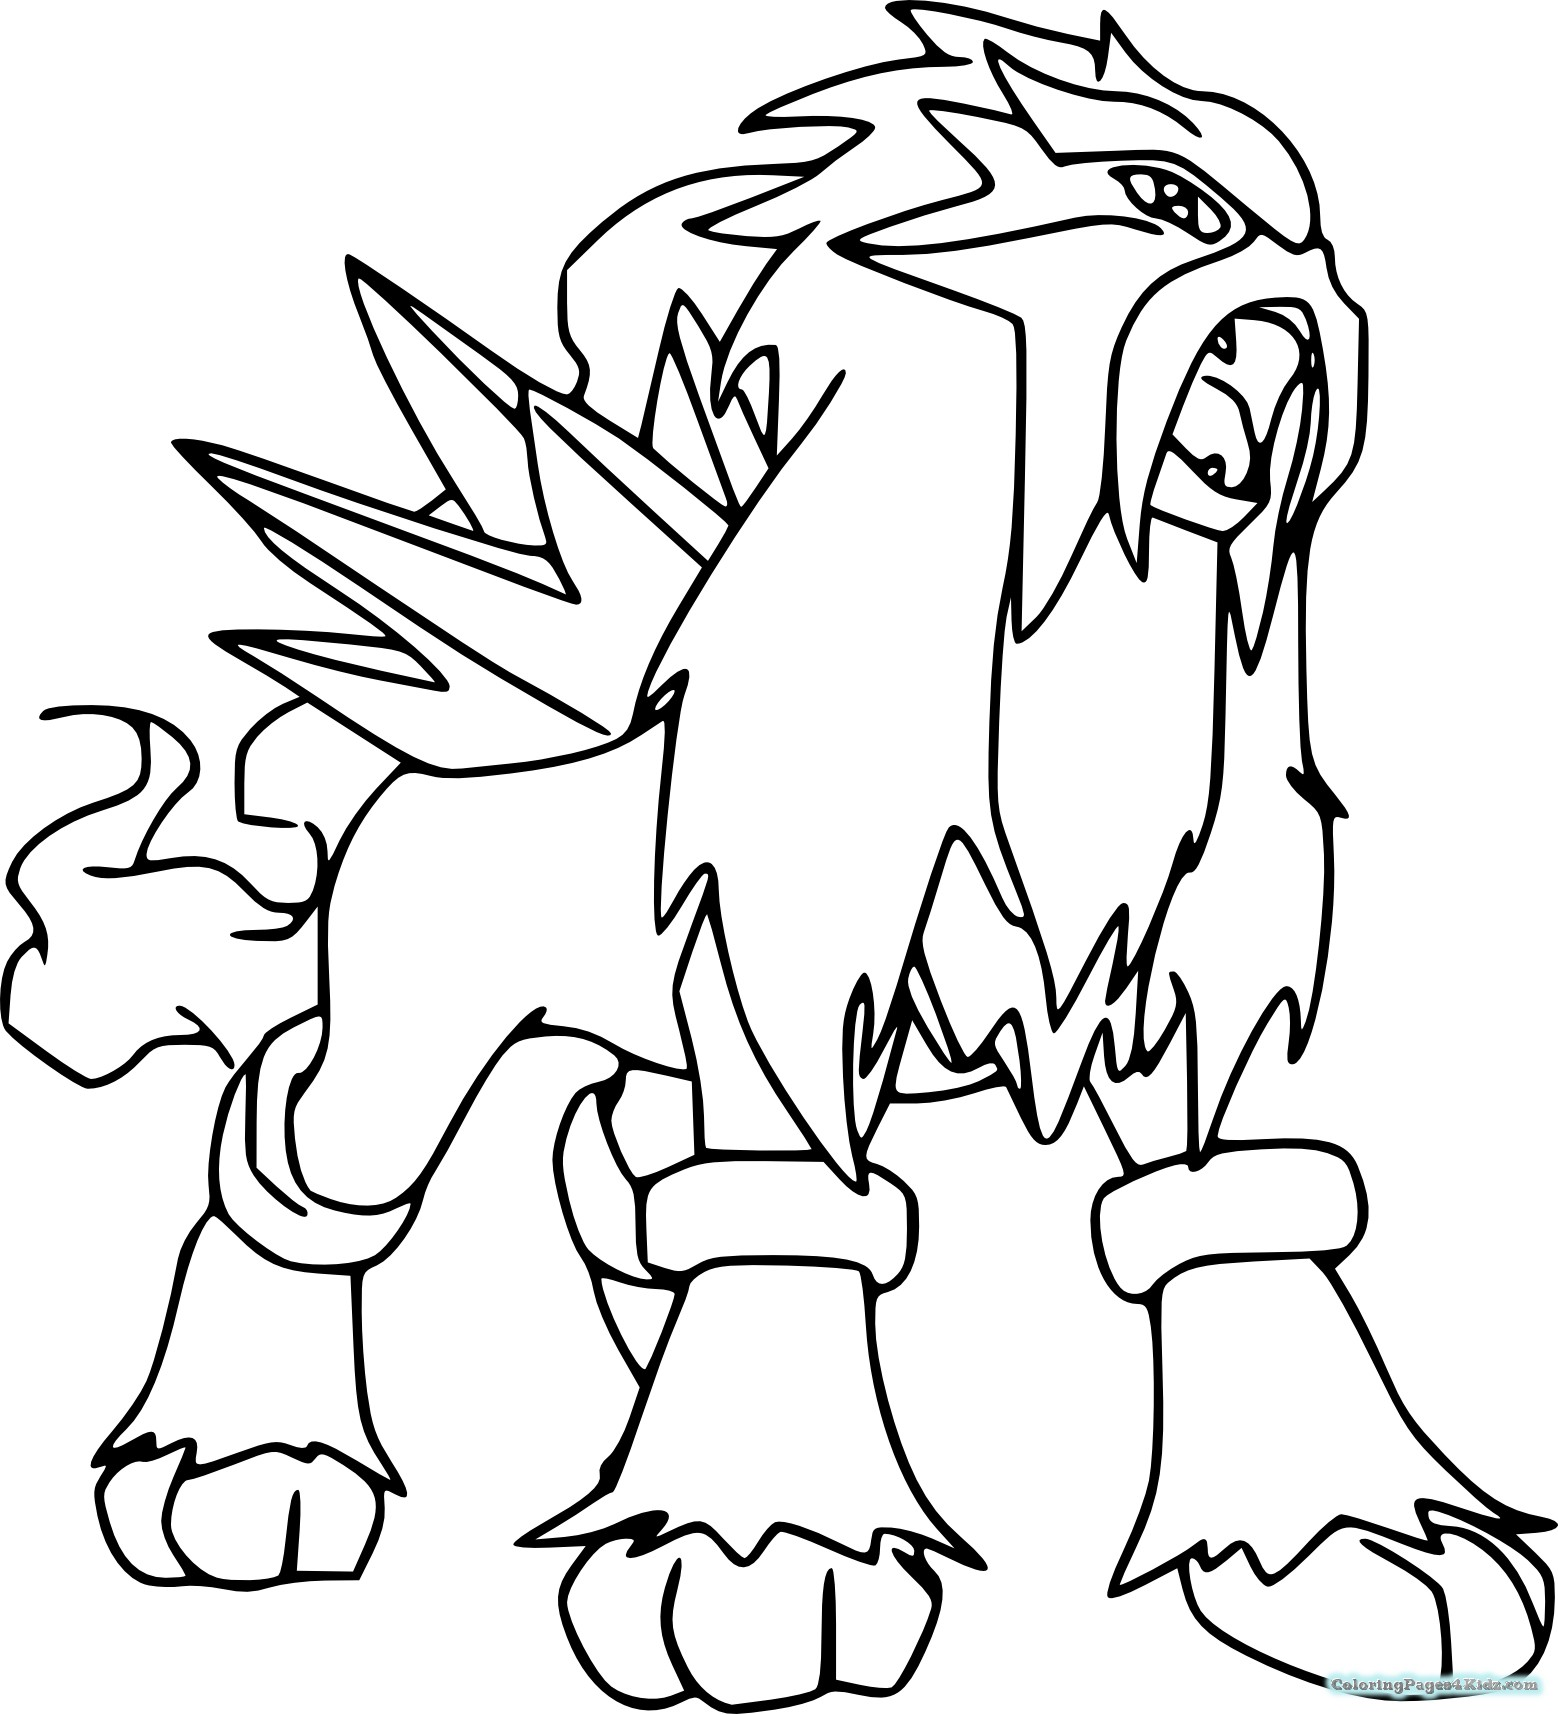 pokemon coloring books pokemon coloring pages join your favorite pokemon on an pokemon books coloring